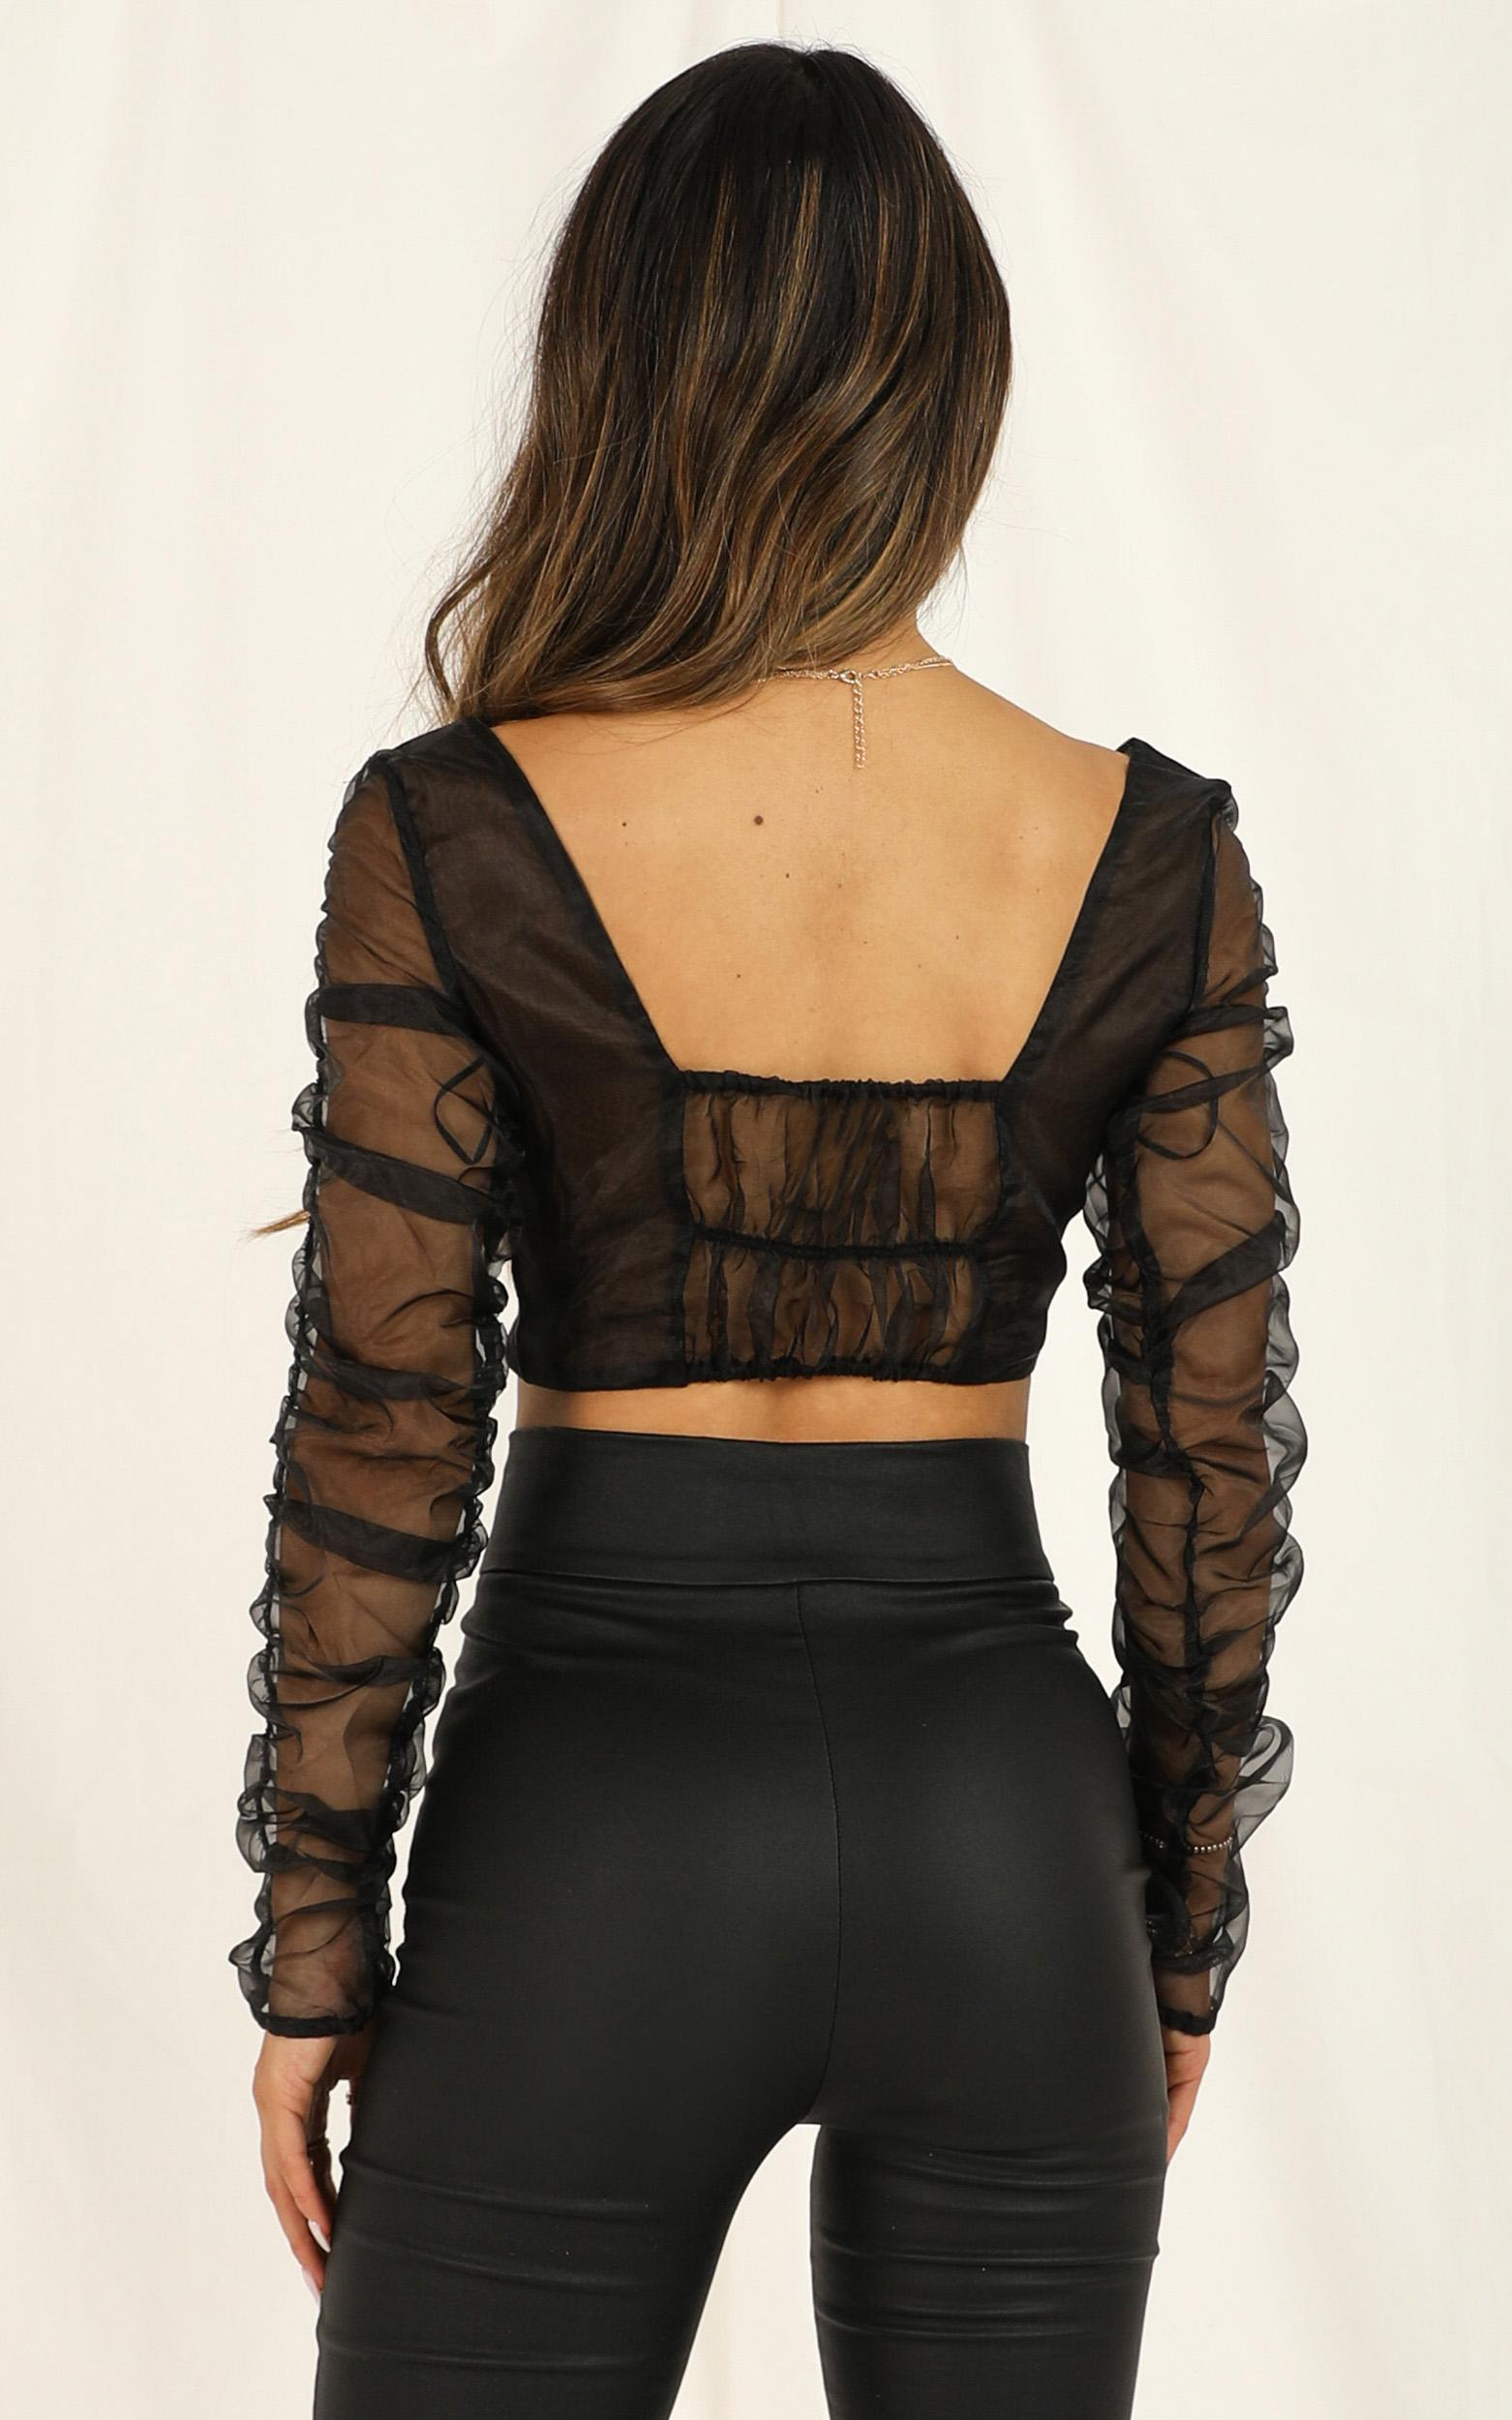 Lioness - Sweet And Selfish Top In Black - 12 (L), Black, hi-res image number null